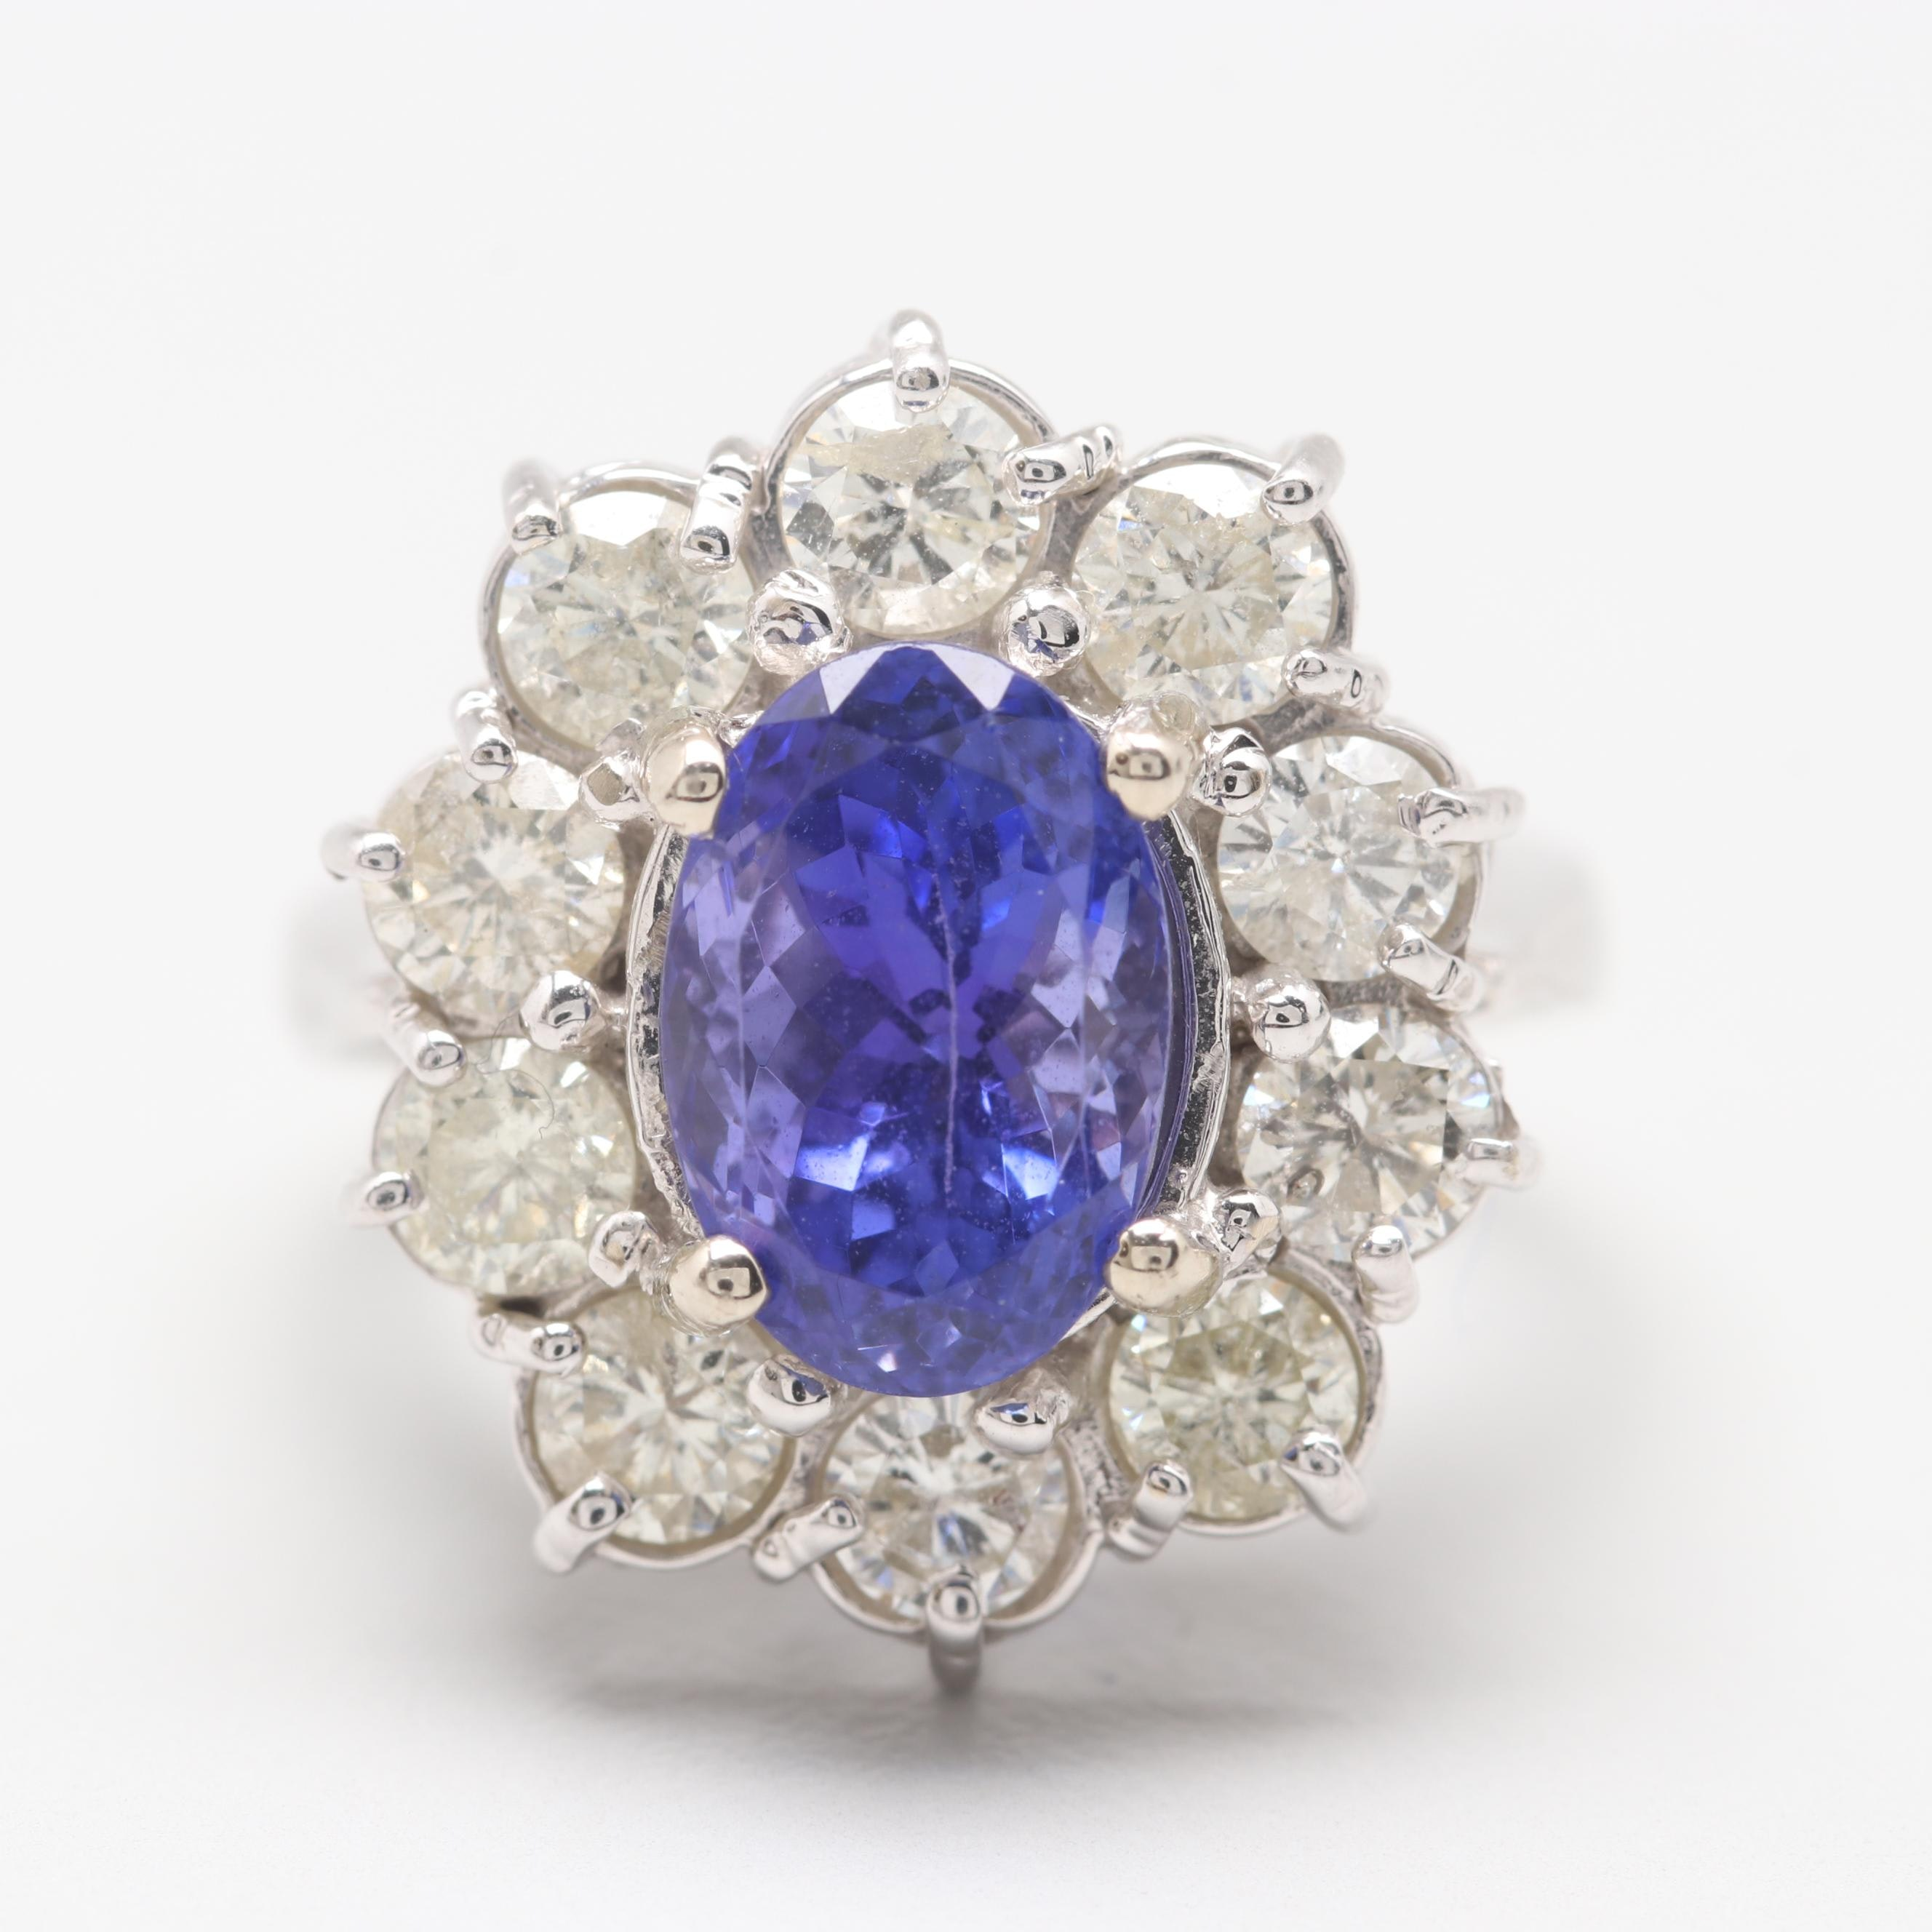 14K White Gold 2.97 CT Tanzanite and 1.56 CTW Diamond Ring